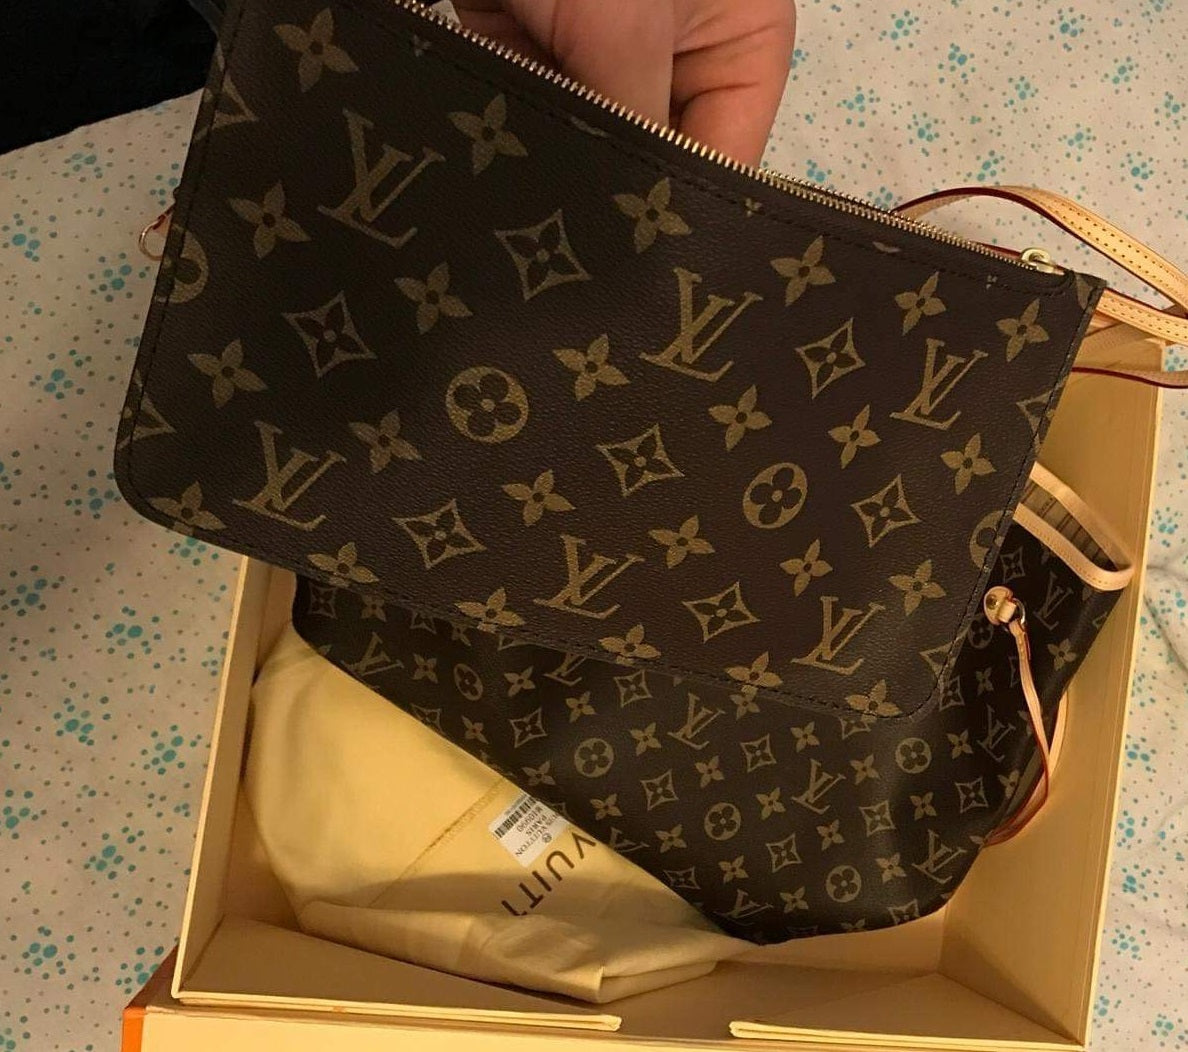 Fake Louis Vuitton Neverfull vs Real: Important Details You Should Definitely Pay Attention To (With Photo Examples) Neverfull Monogram Pouch